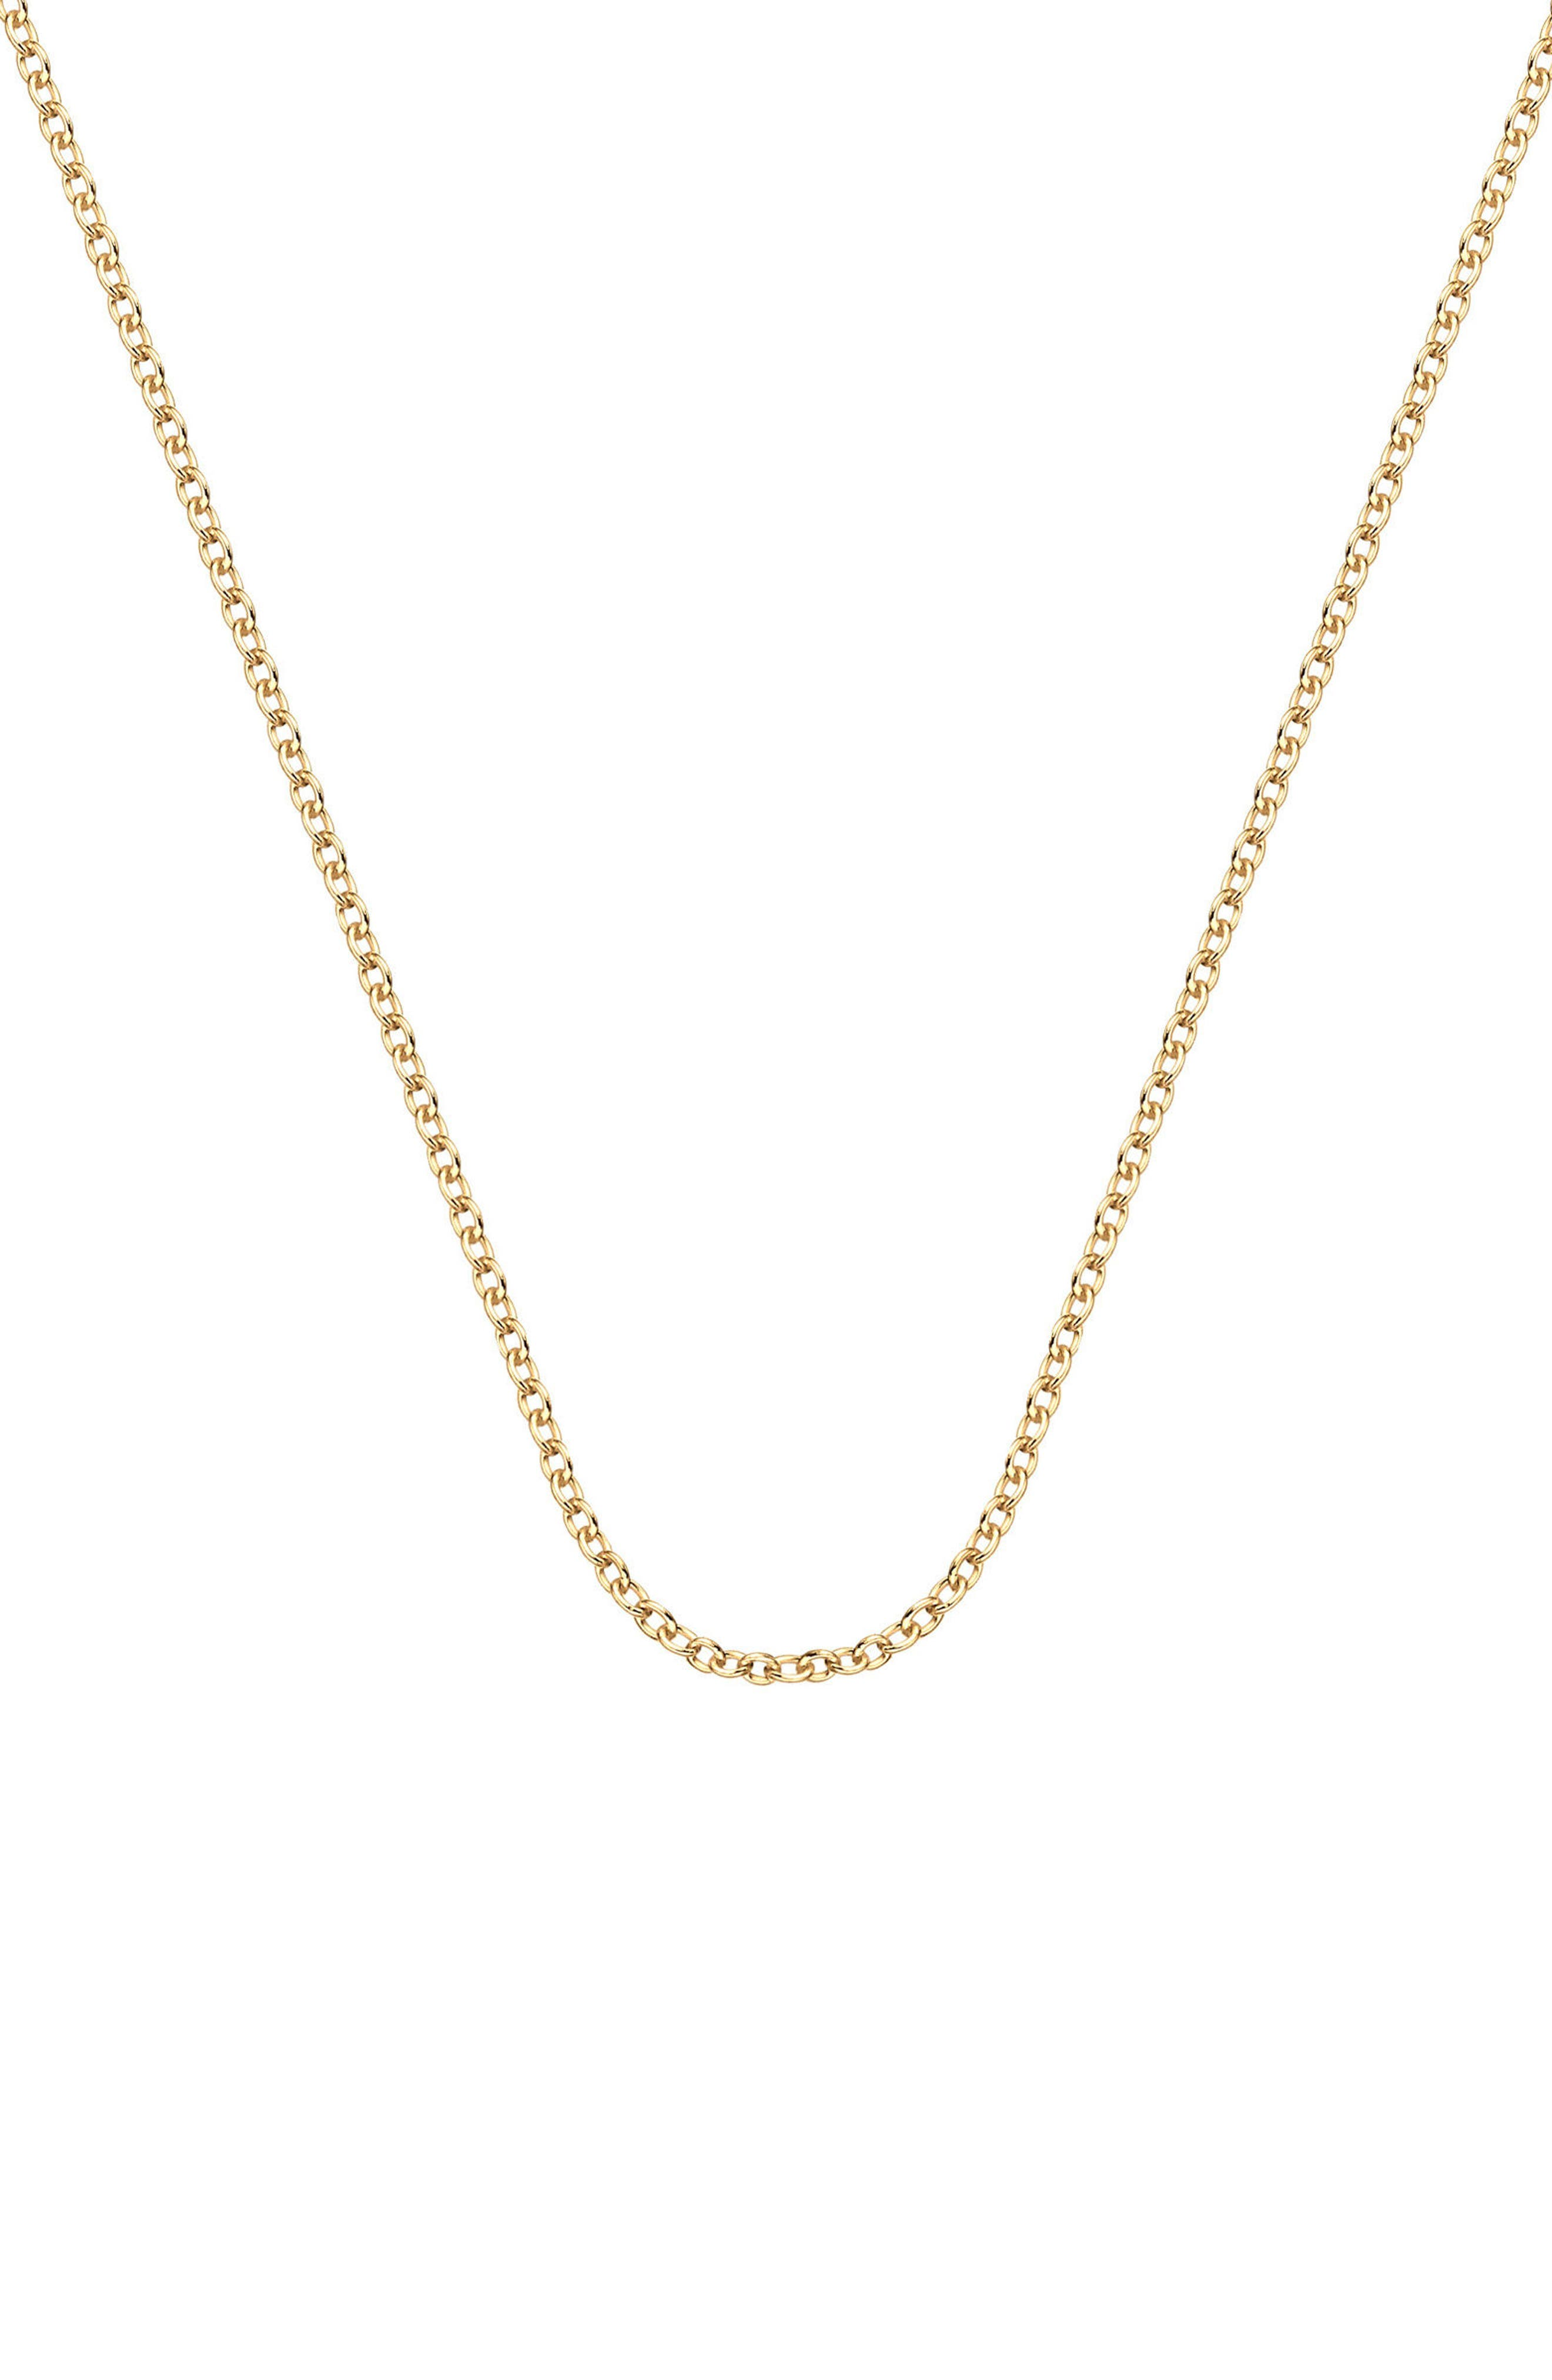 32 Inch Adjustable Rolo Chain,                         Main,                         color, Yellow Gold